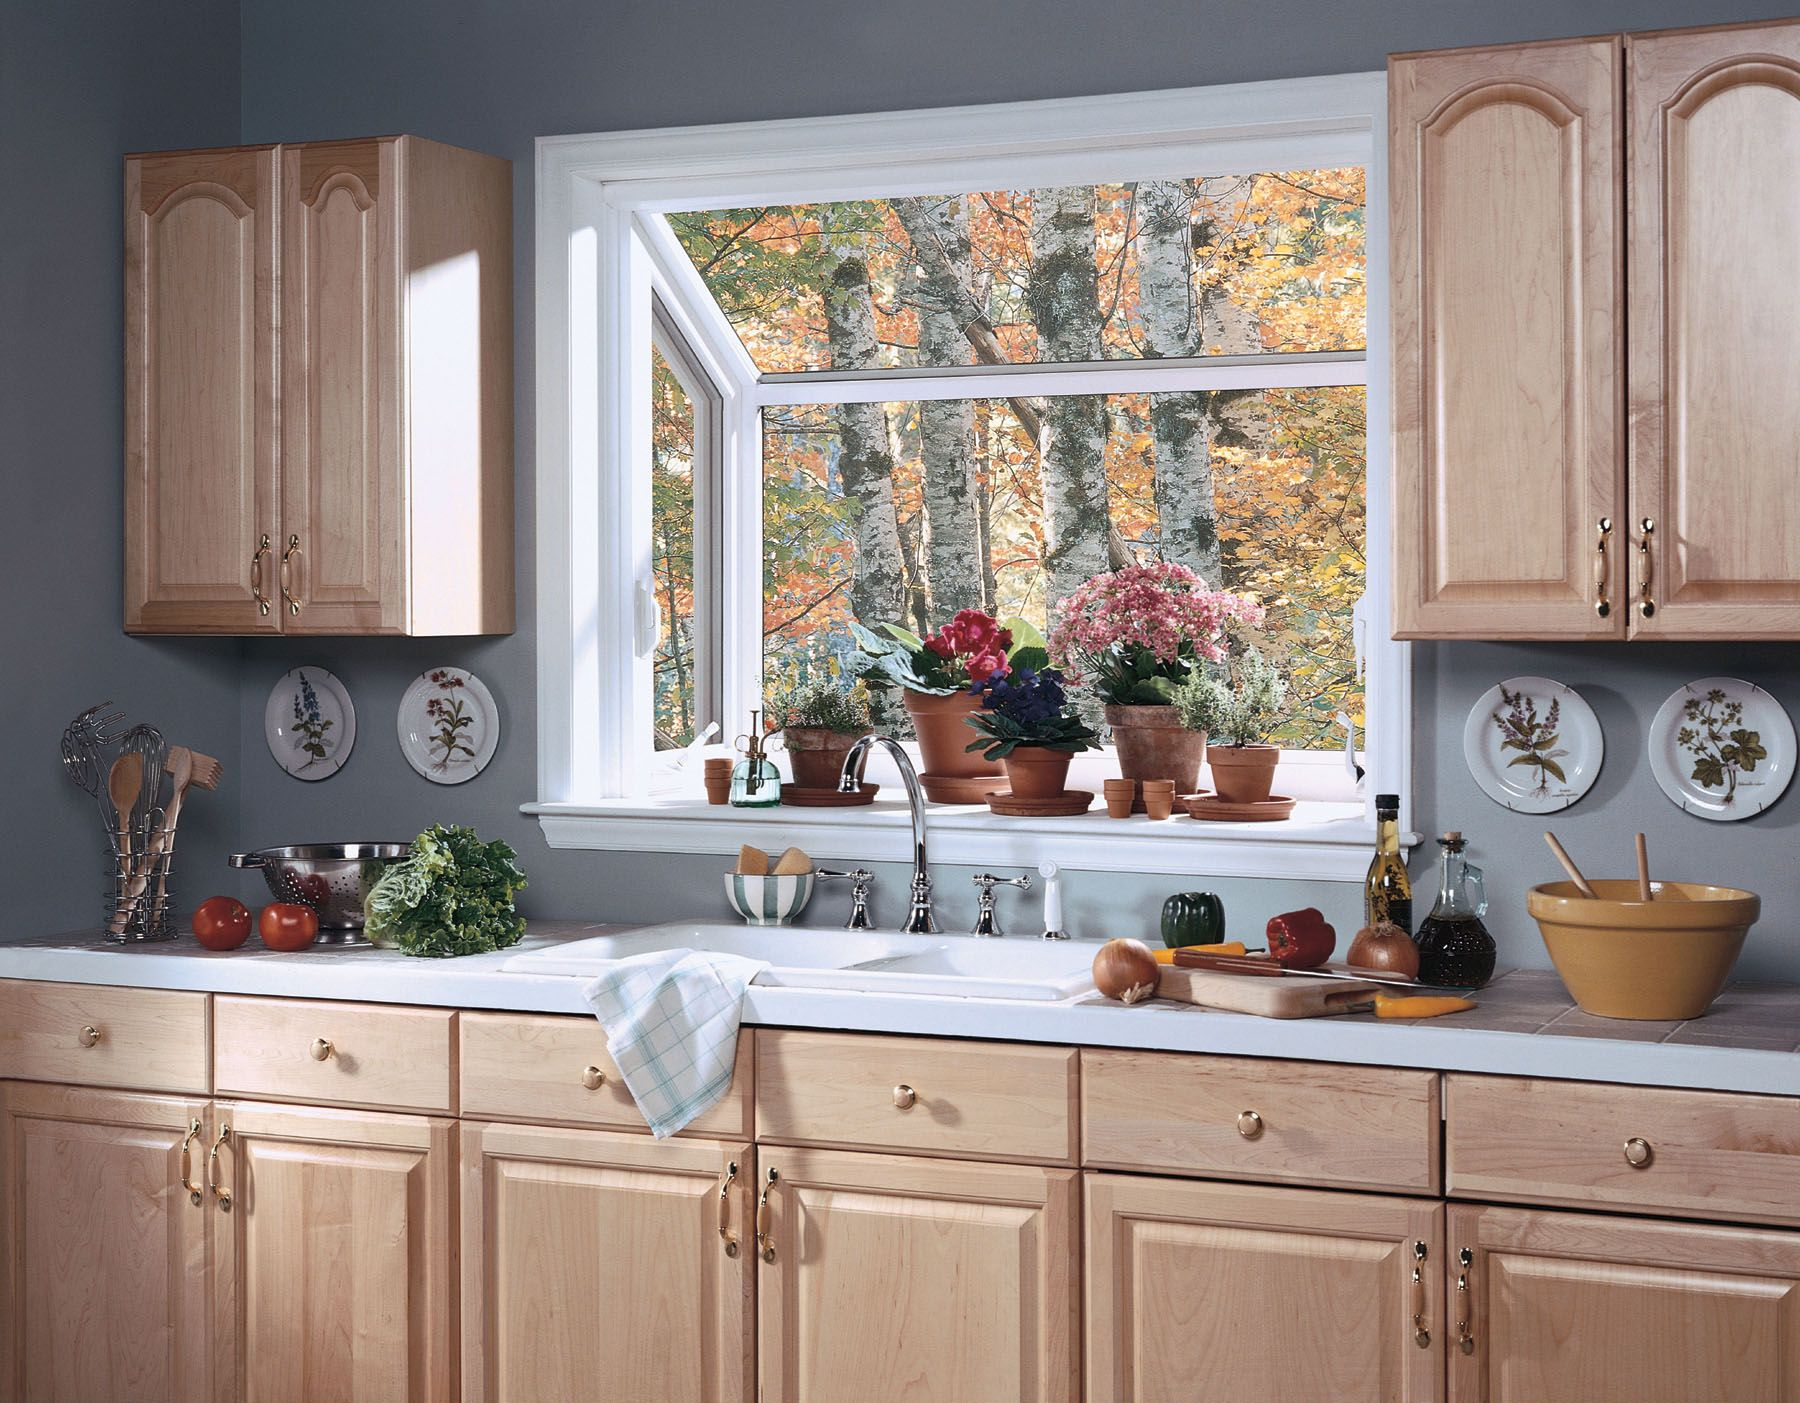 kitchen casement window over sink | Kitchen garden window ...